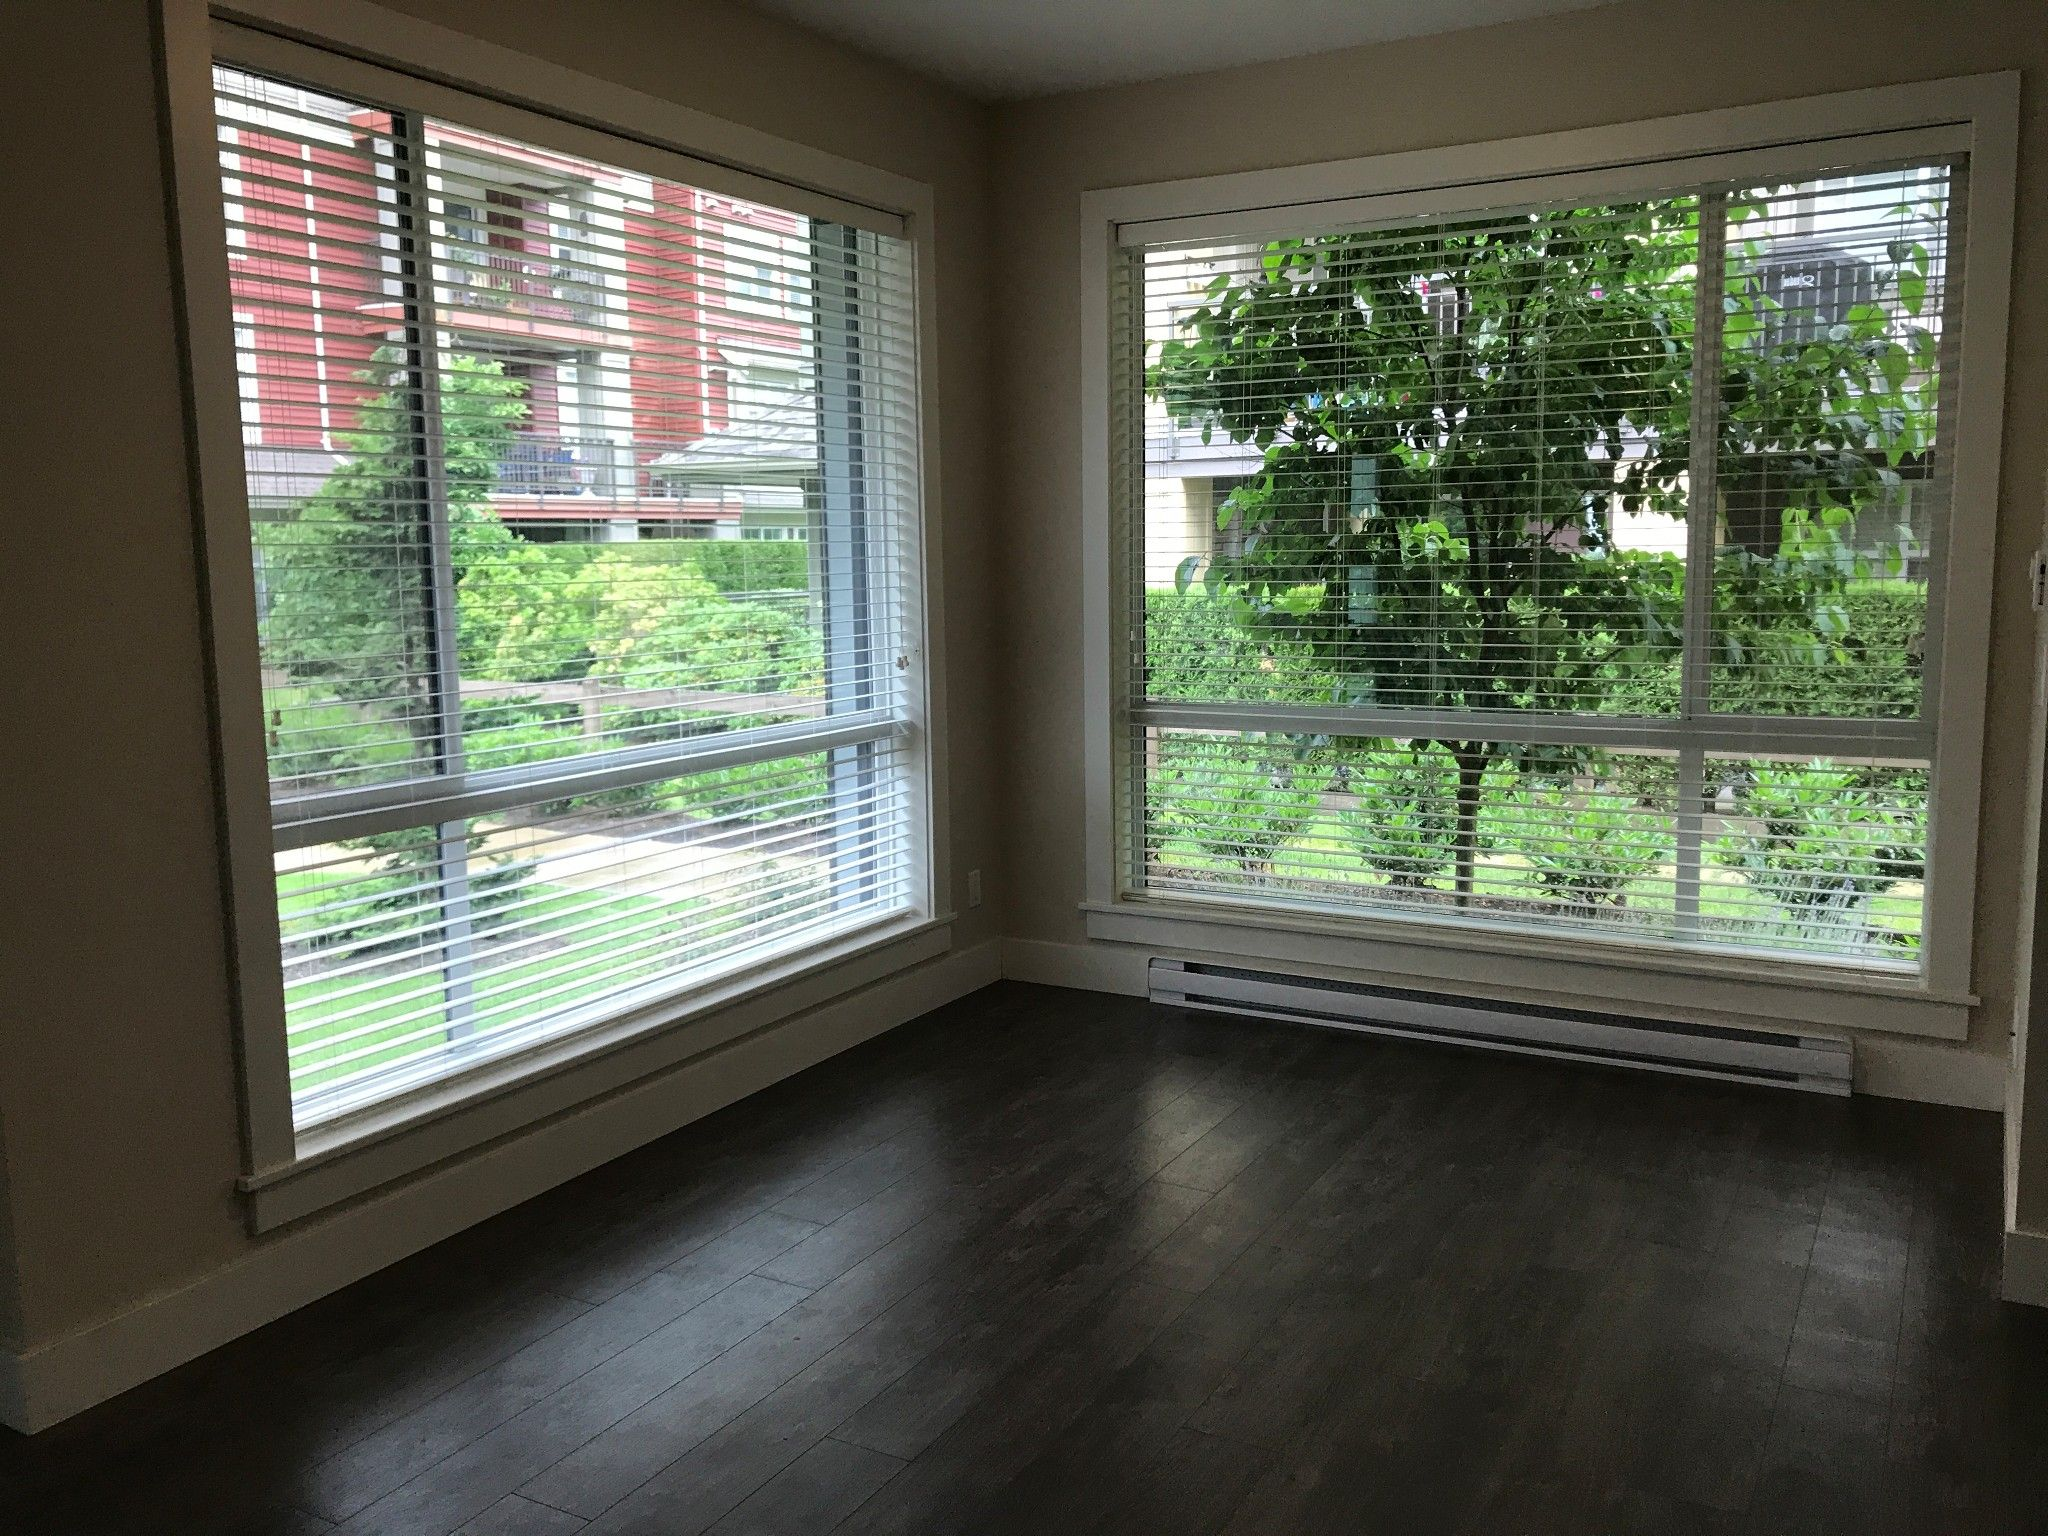 Photo 6: Photos: #38 45615 Tamihi Way in Chilliwack: Garrison Crossing Townhouse for rent